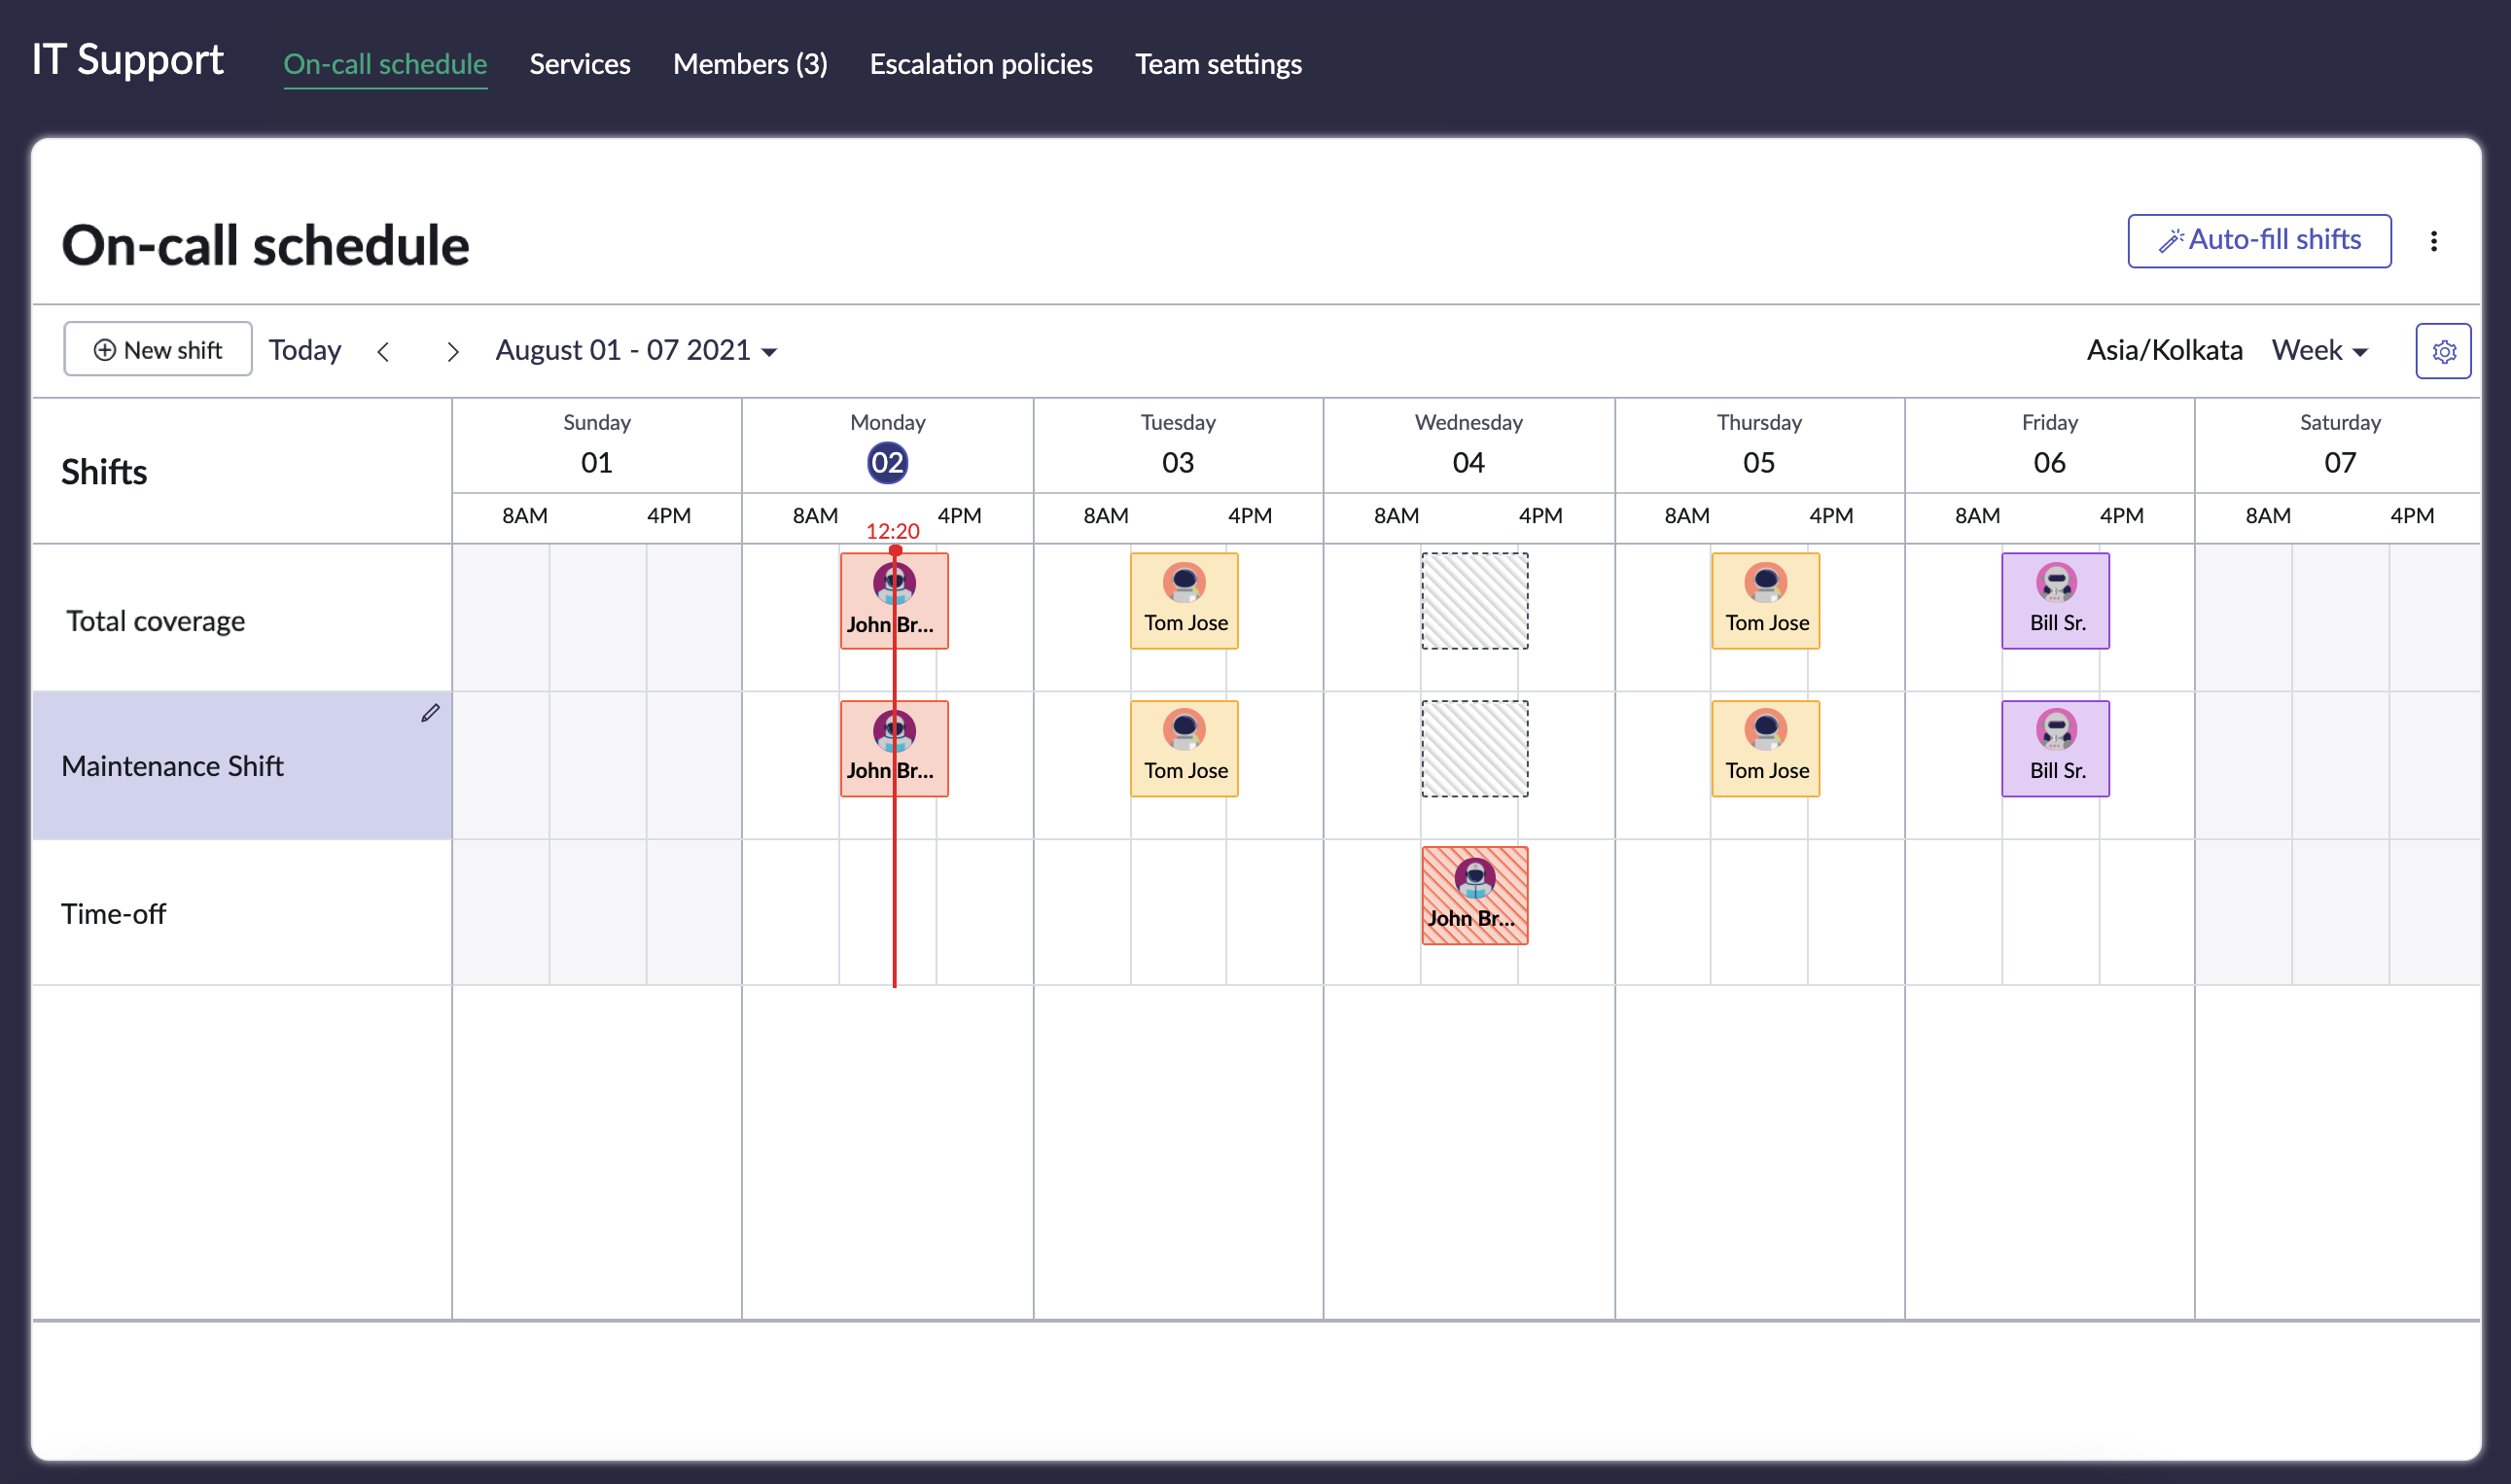 View on-call schedule page for the team.